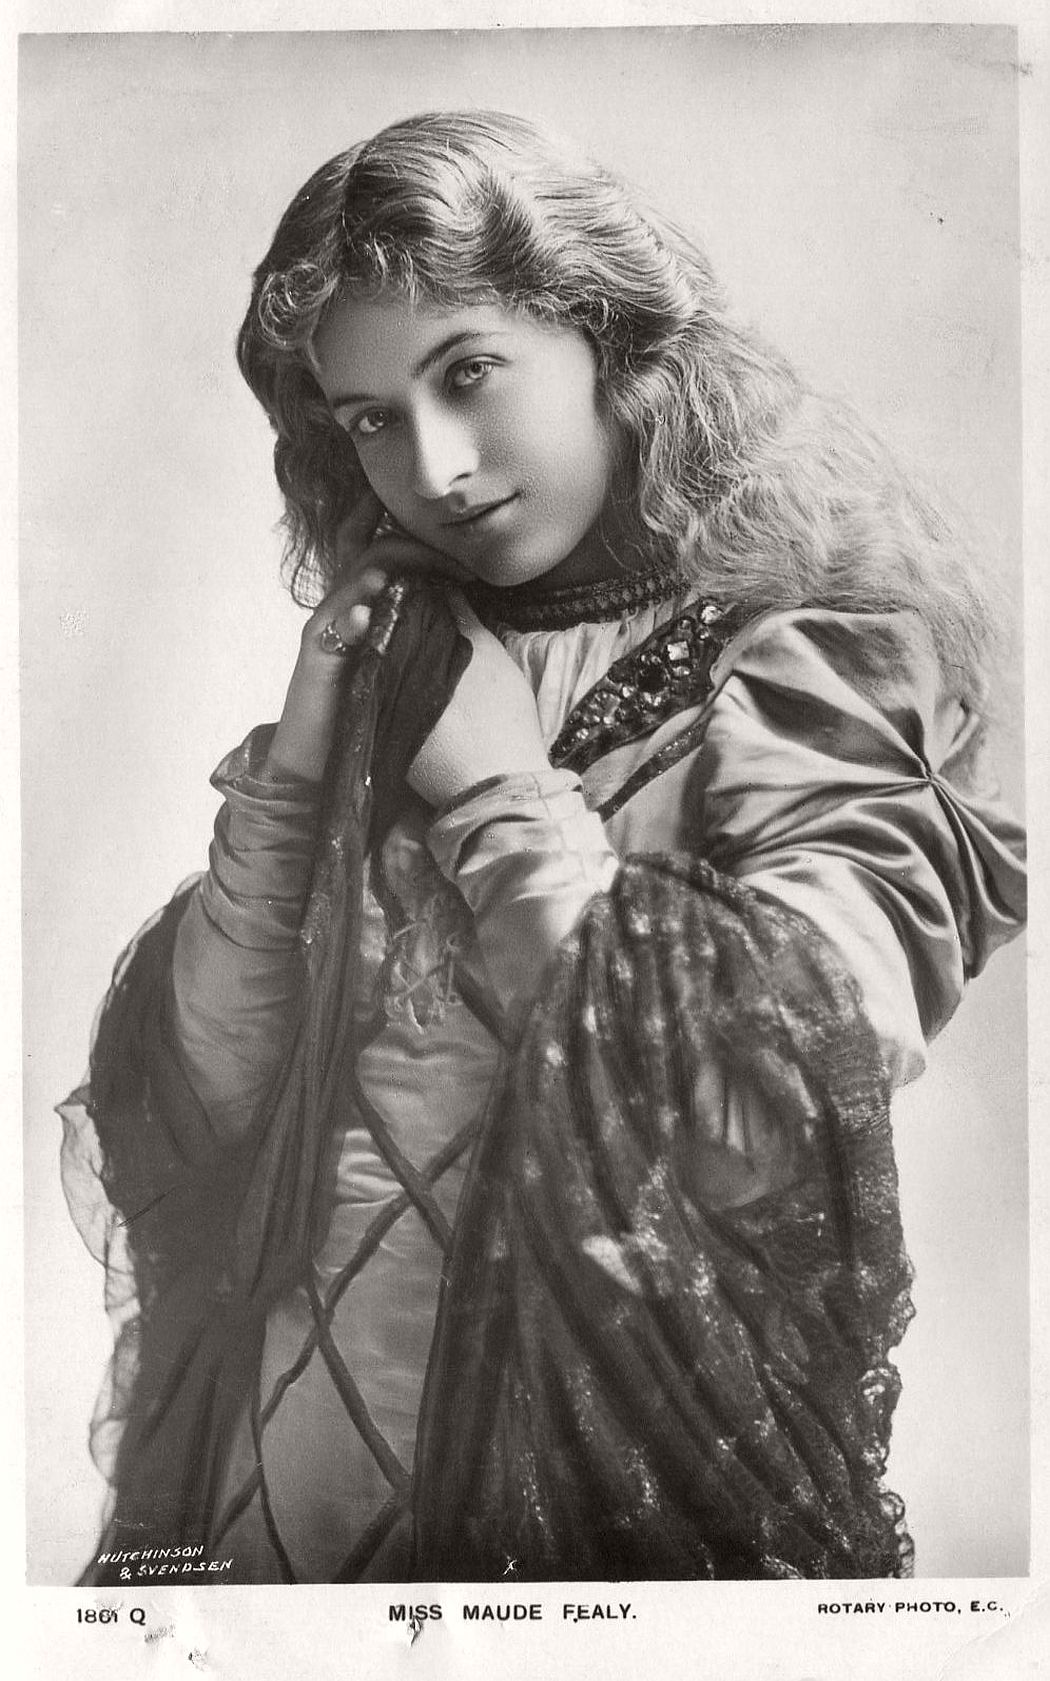 Vintage Retro Postcards Of Actress Miss Maude Fealy 1900s